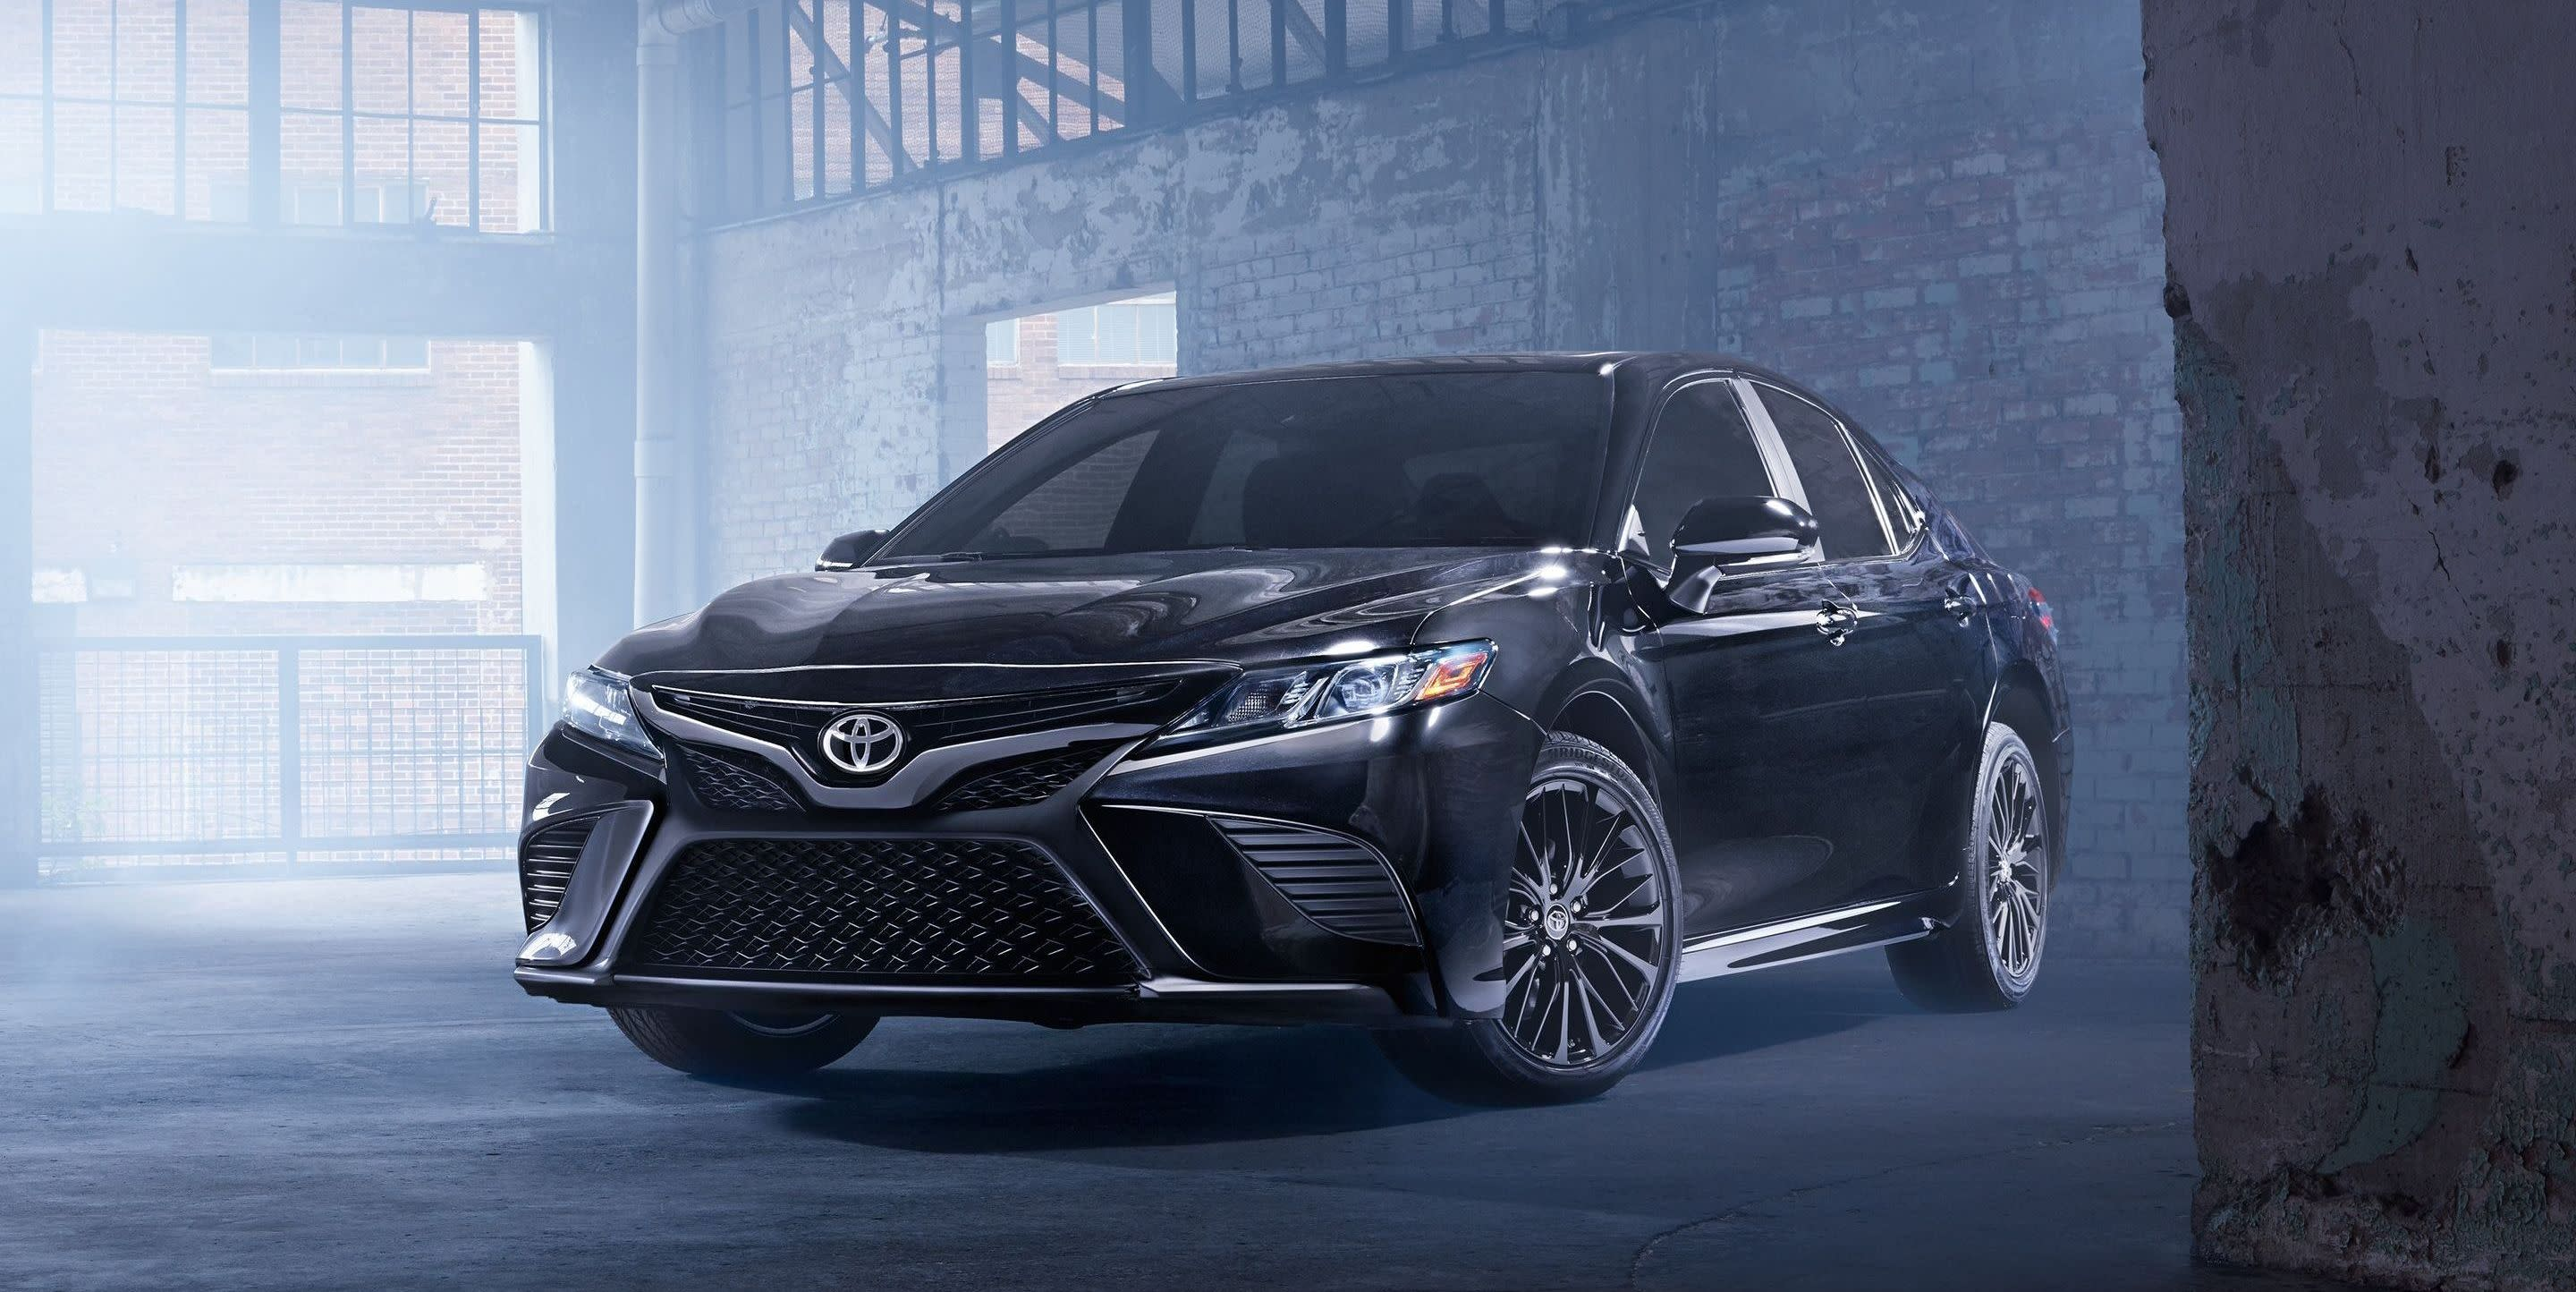 2019 Toyota Camry vs 2019 Chevrolet Malibu near Queens, NY